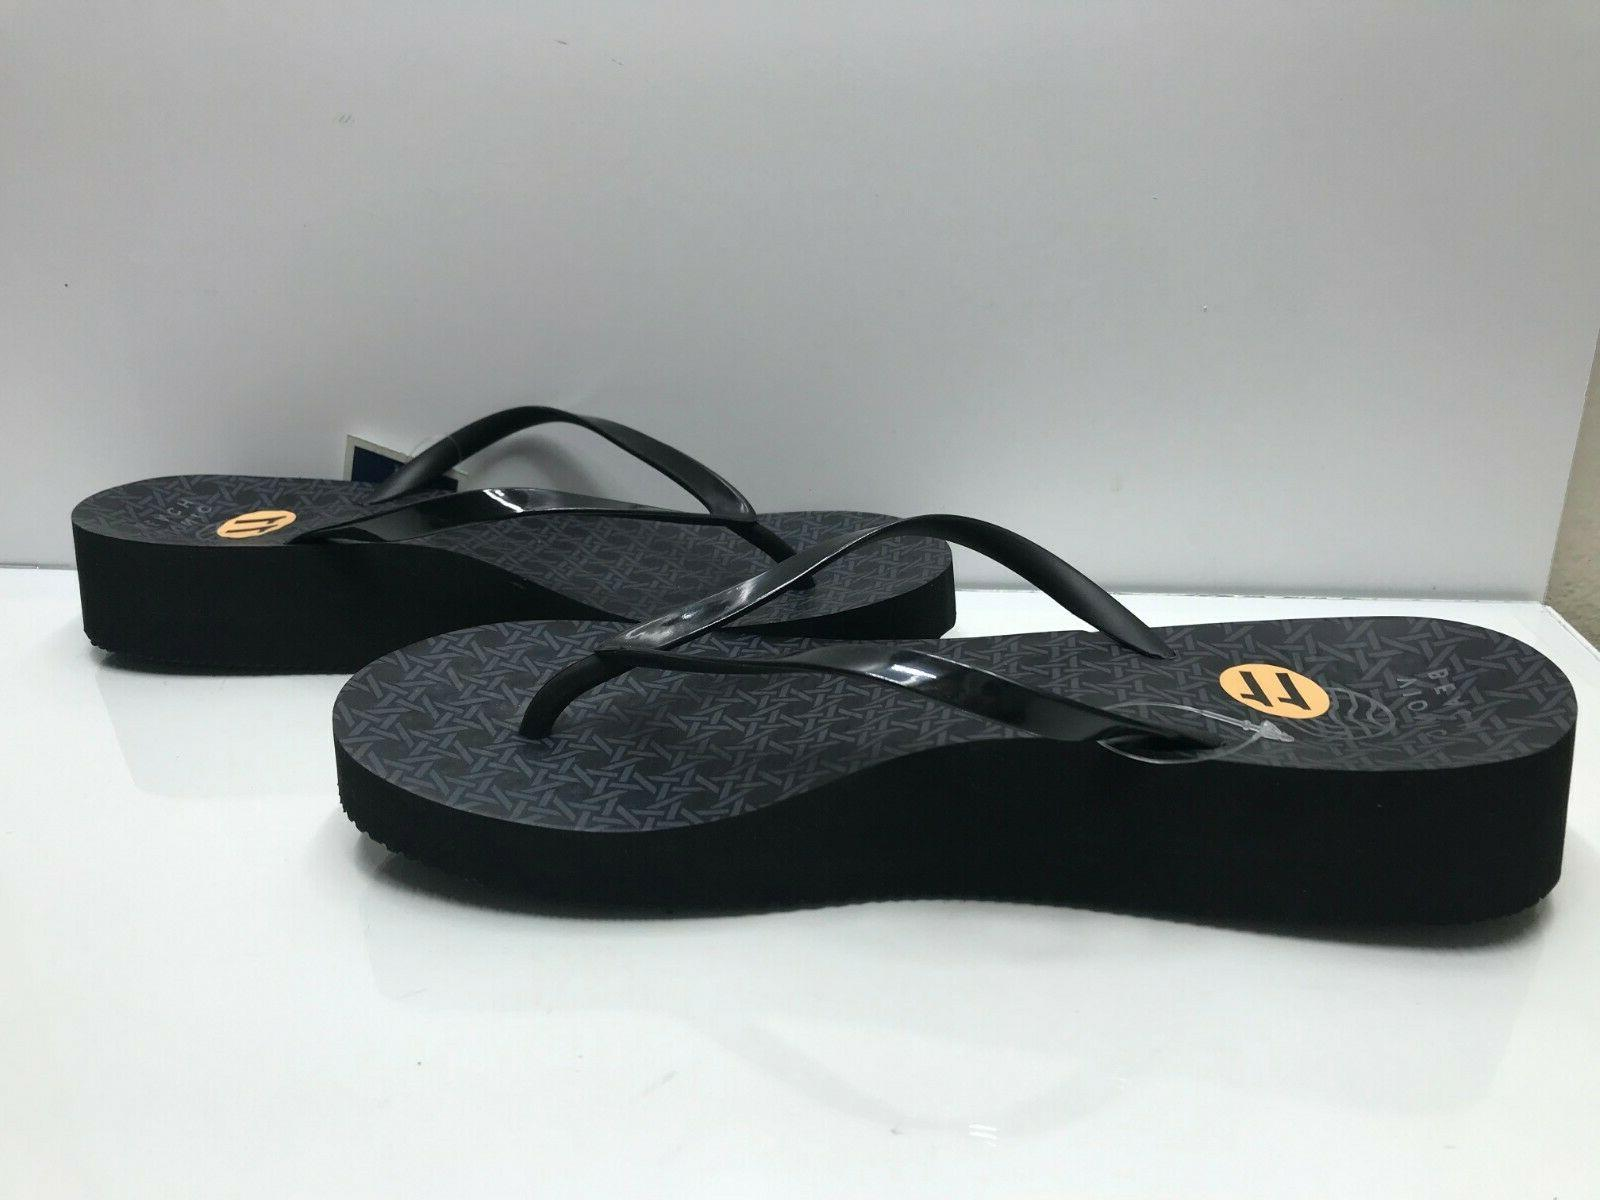 Vionic Women's Flip Flops New